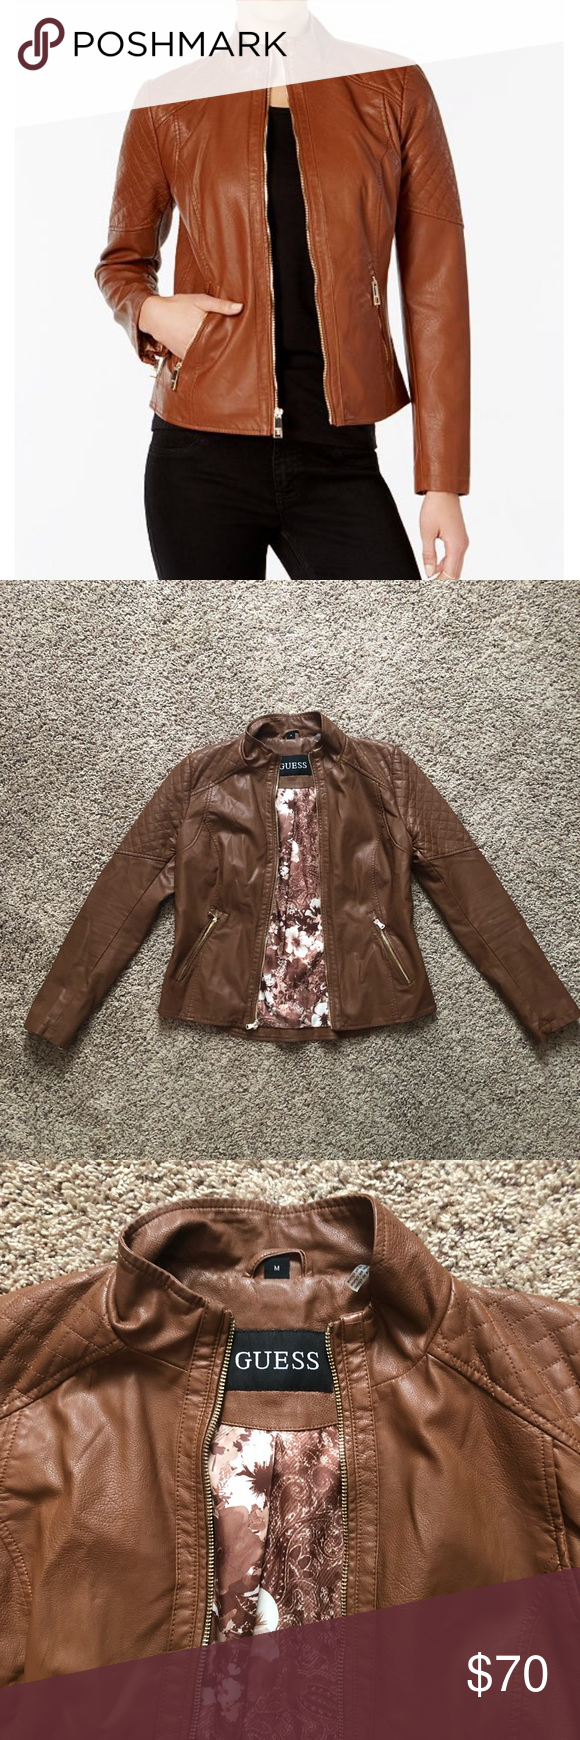 Guess Stand Collar Faux Leather Jacket Leather Jacket Faux Leather Jackets Jackets [ 1740 x 580 Pixel ]